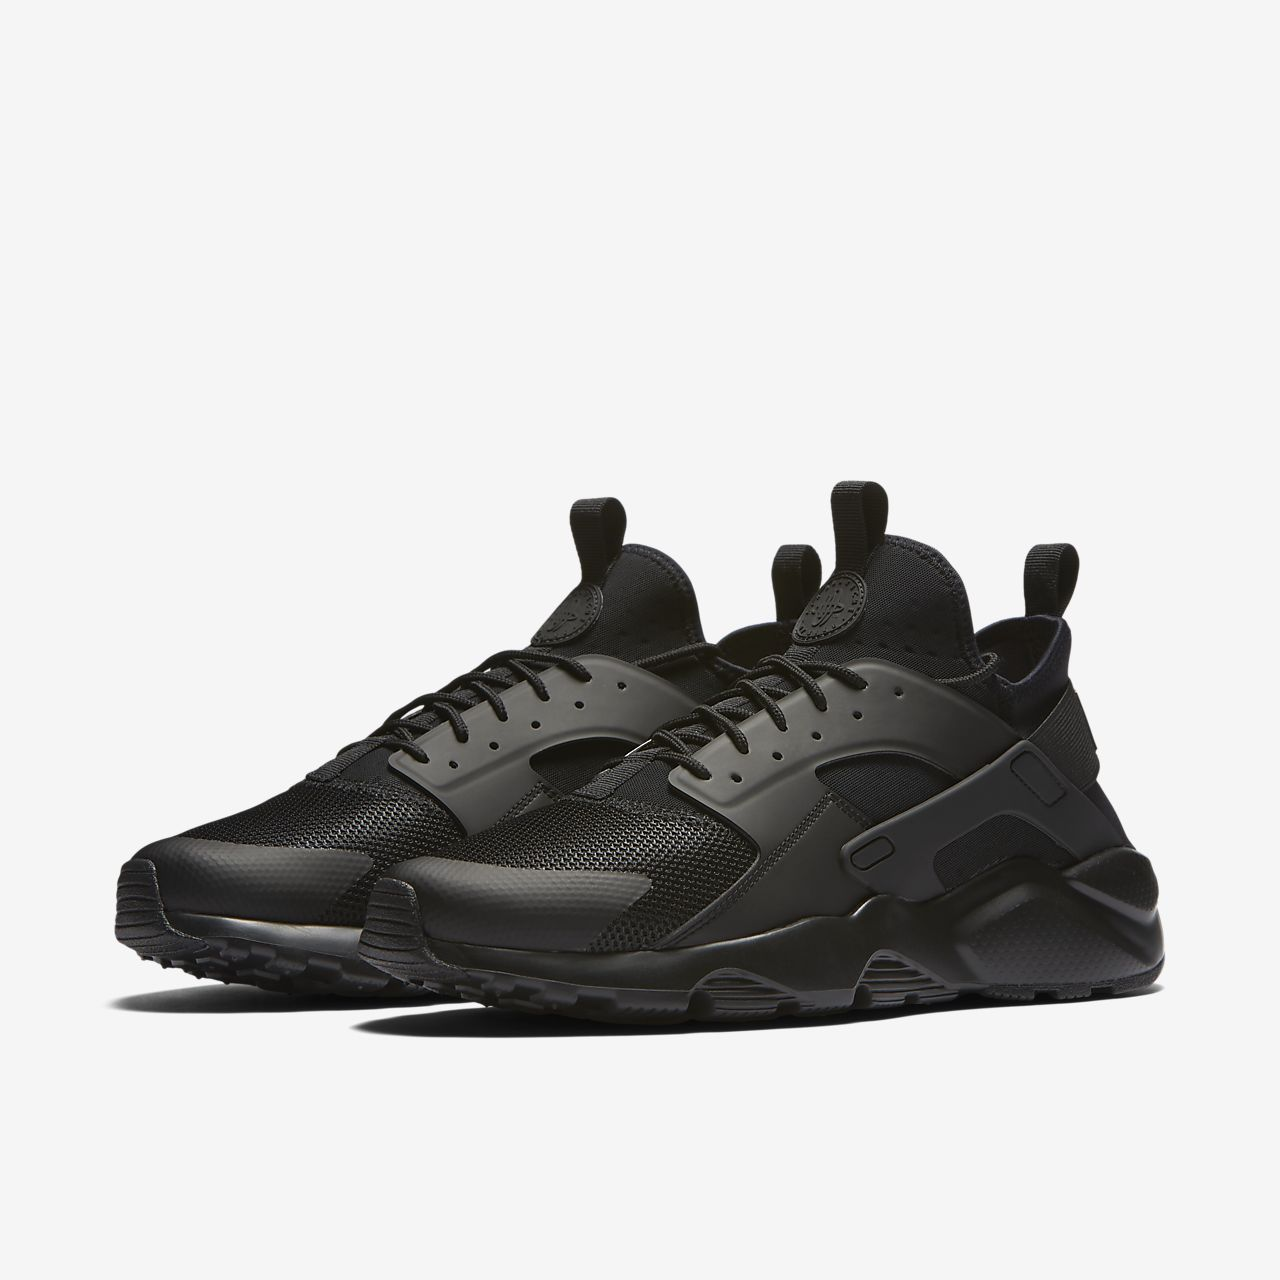 7e854338fafc Nike Air Huarache Ultra Men s Shoe. Nike.com NL